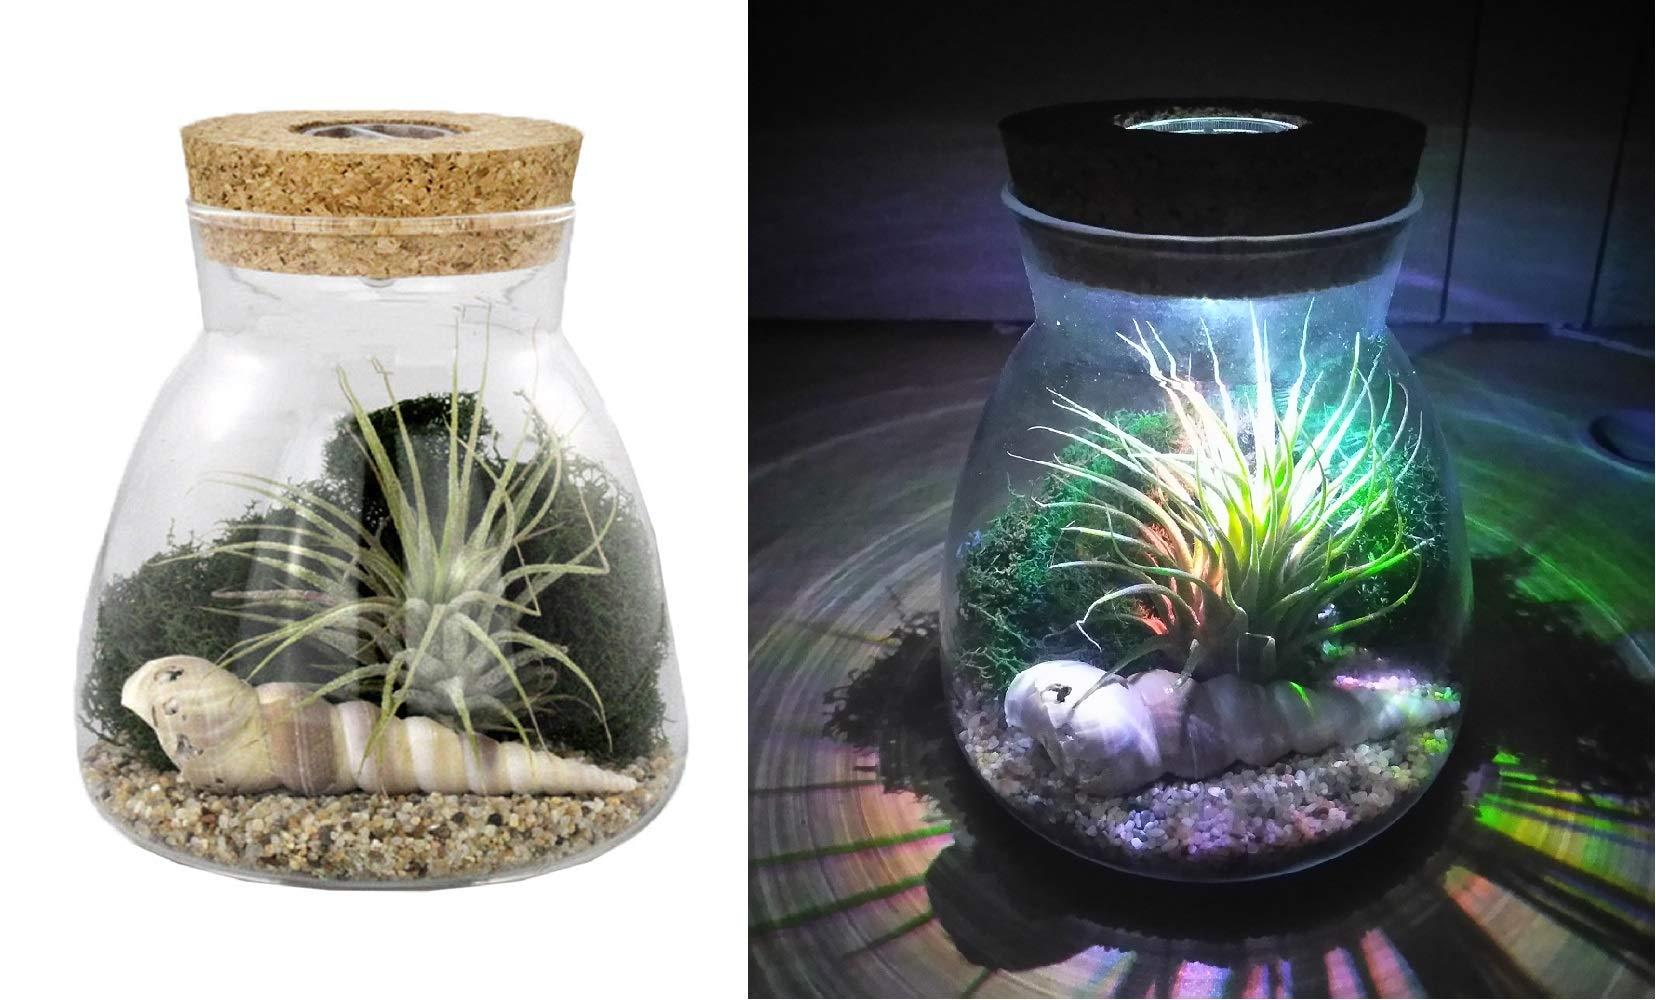 NW Wholesaler Live Tillandsia Air Plant Terrarium Kit with Color Changing LED Light Display - Multi Color Illuminating Light Changes Air Plants Colors (Beach Sand)